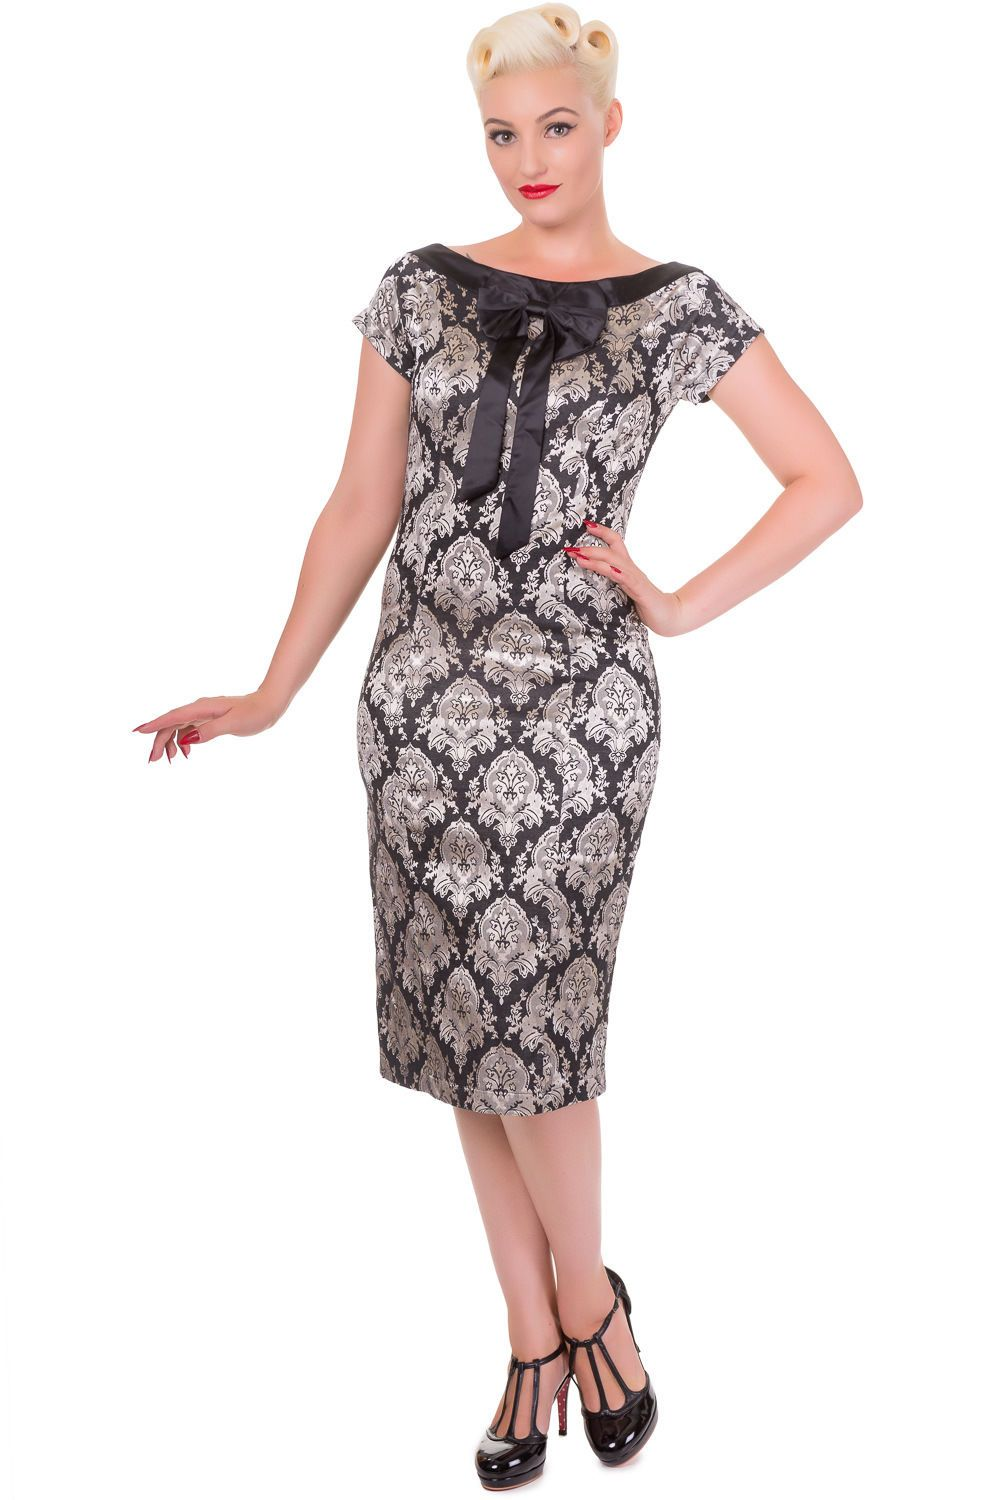 Banned limitless gothic victorian dress rockabilly pin up us bow